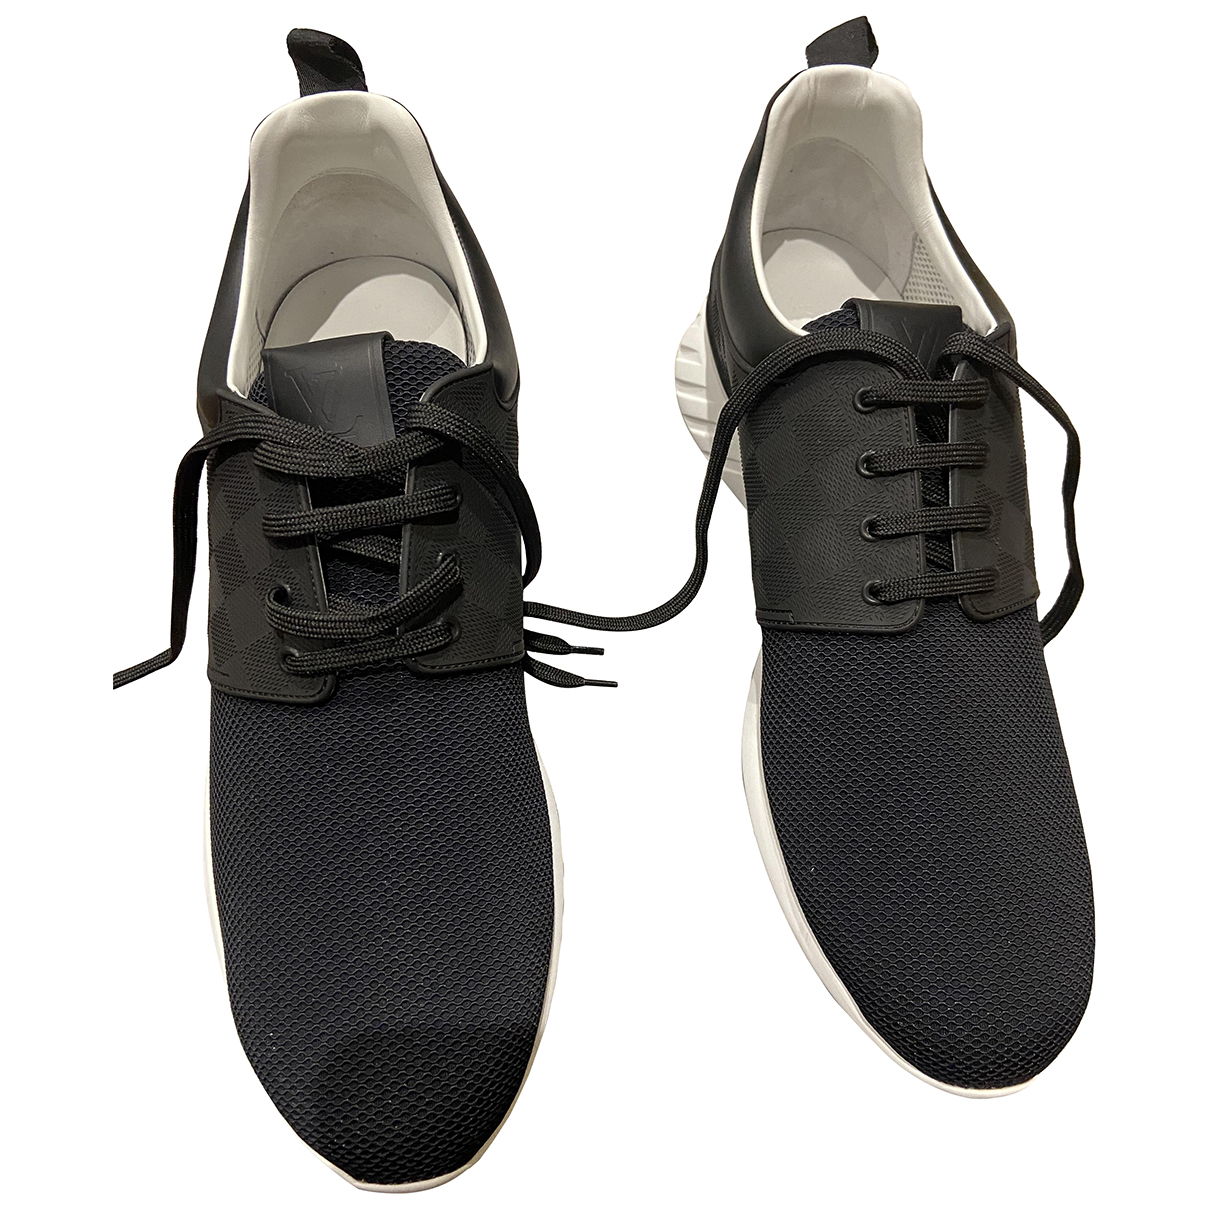 Louis Vuitton LV Trainer Black Cloth Trainers for Men 10 UK